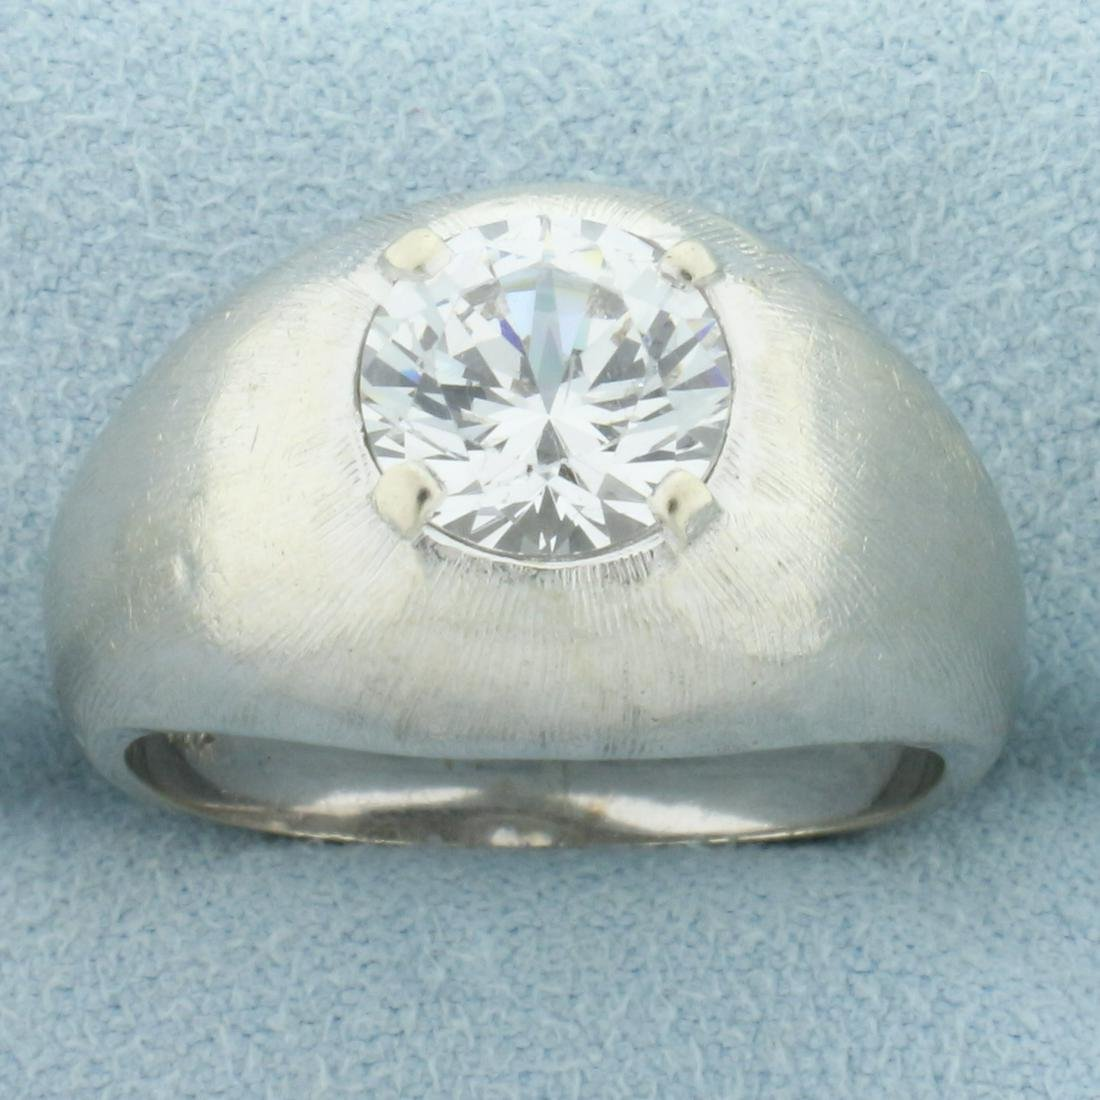 2ct White Sapphire Solitaire Ring in 14K White Gold